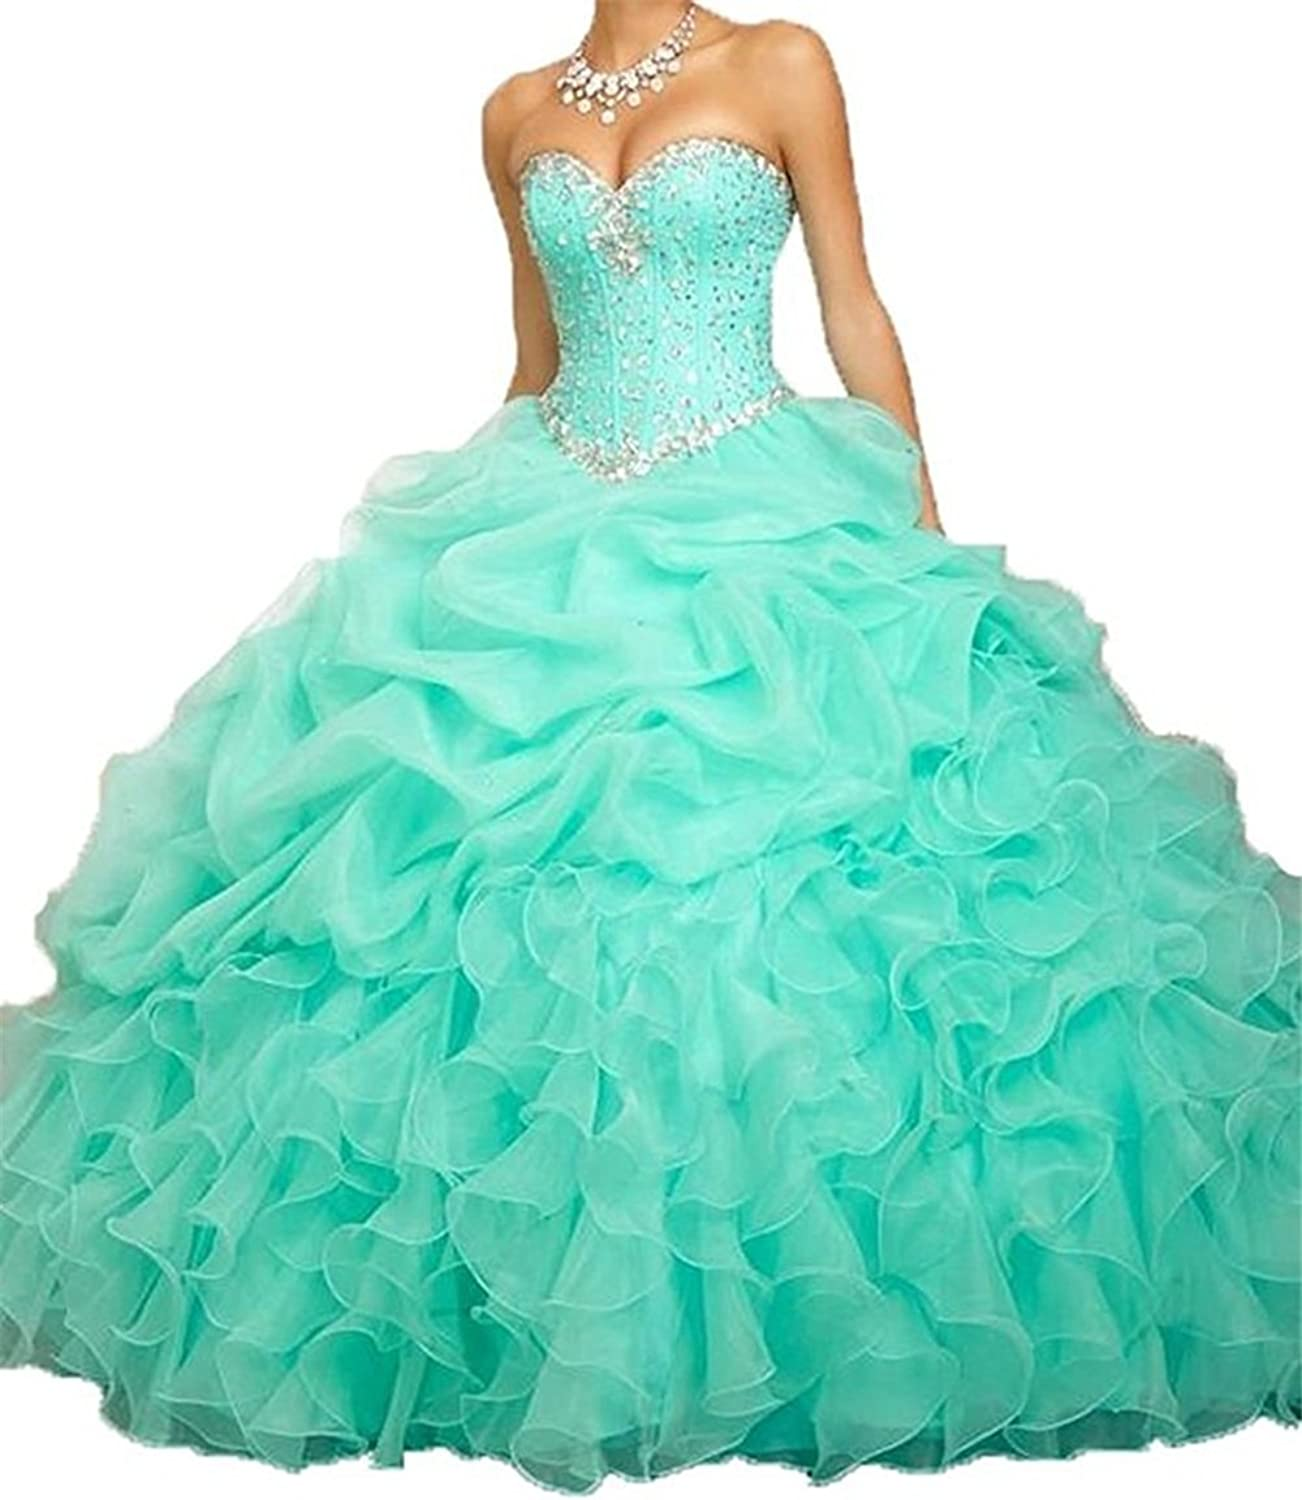 BEALEGAN Lady Women's Beaded Ball Gown Quinceanera Dresses Formal Prom Gown